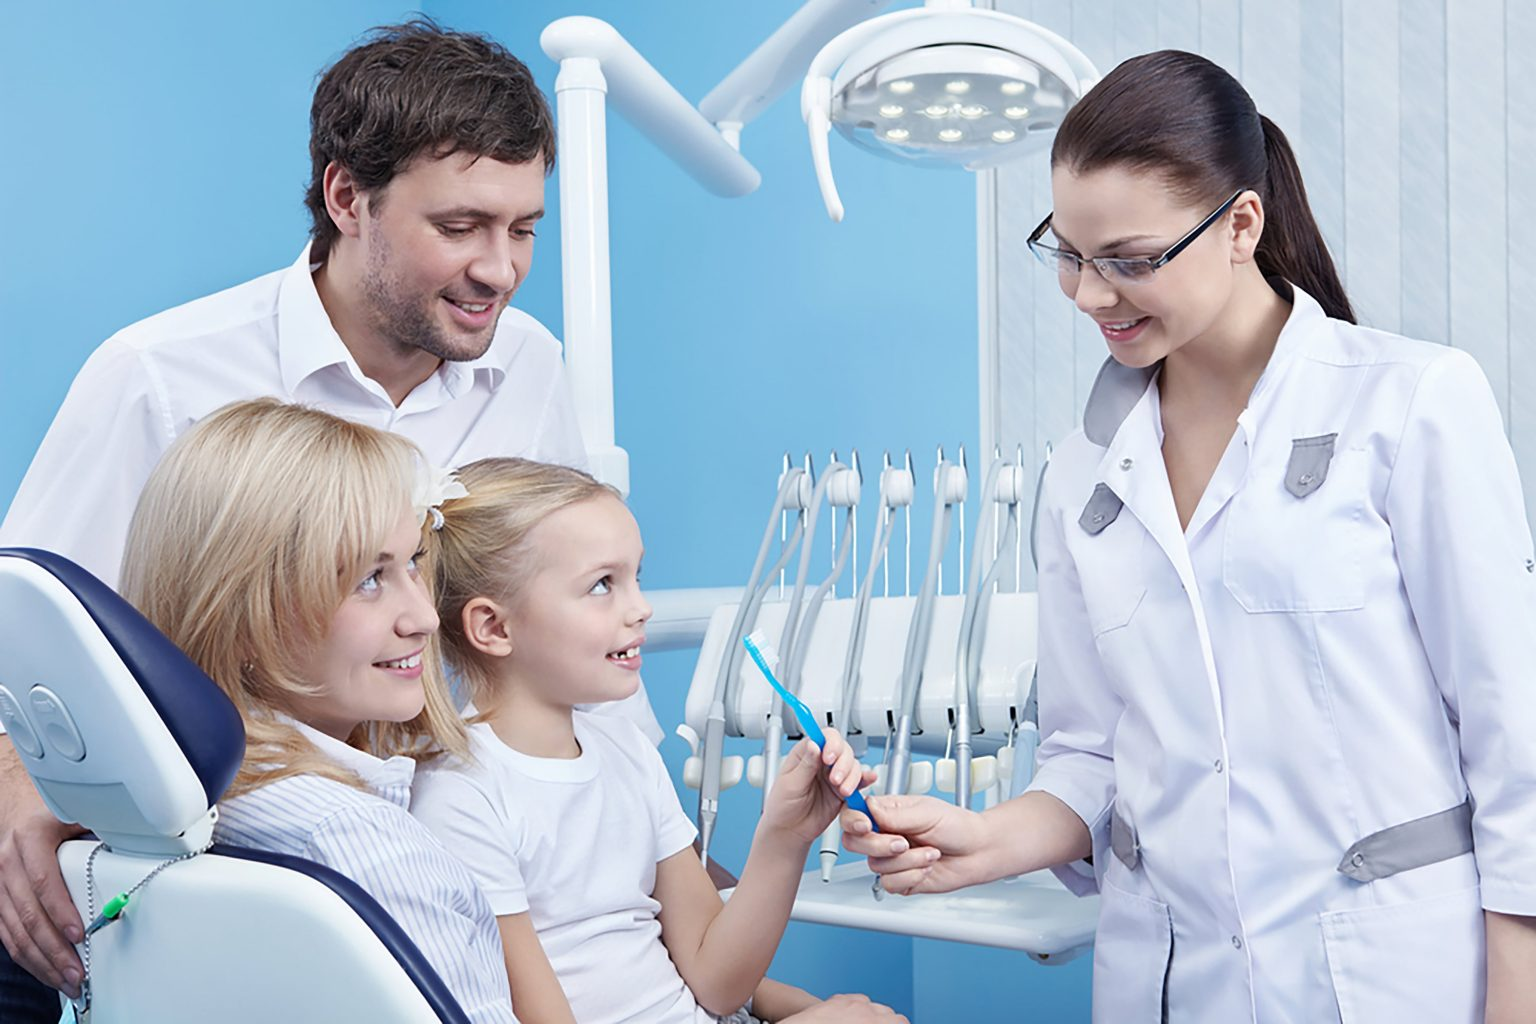 Parents, Did You Make Your Child's Dental Appointment?